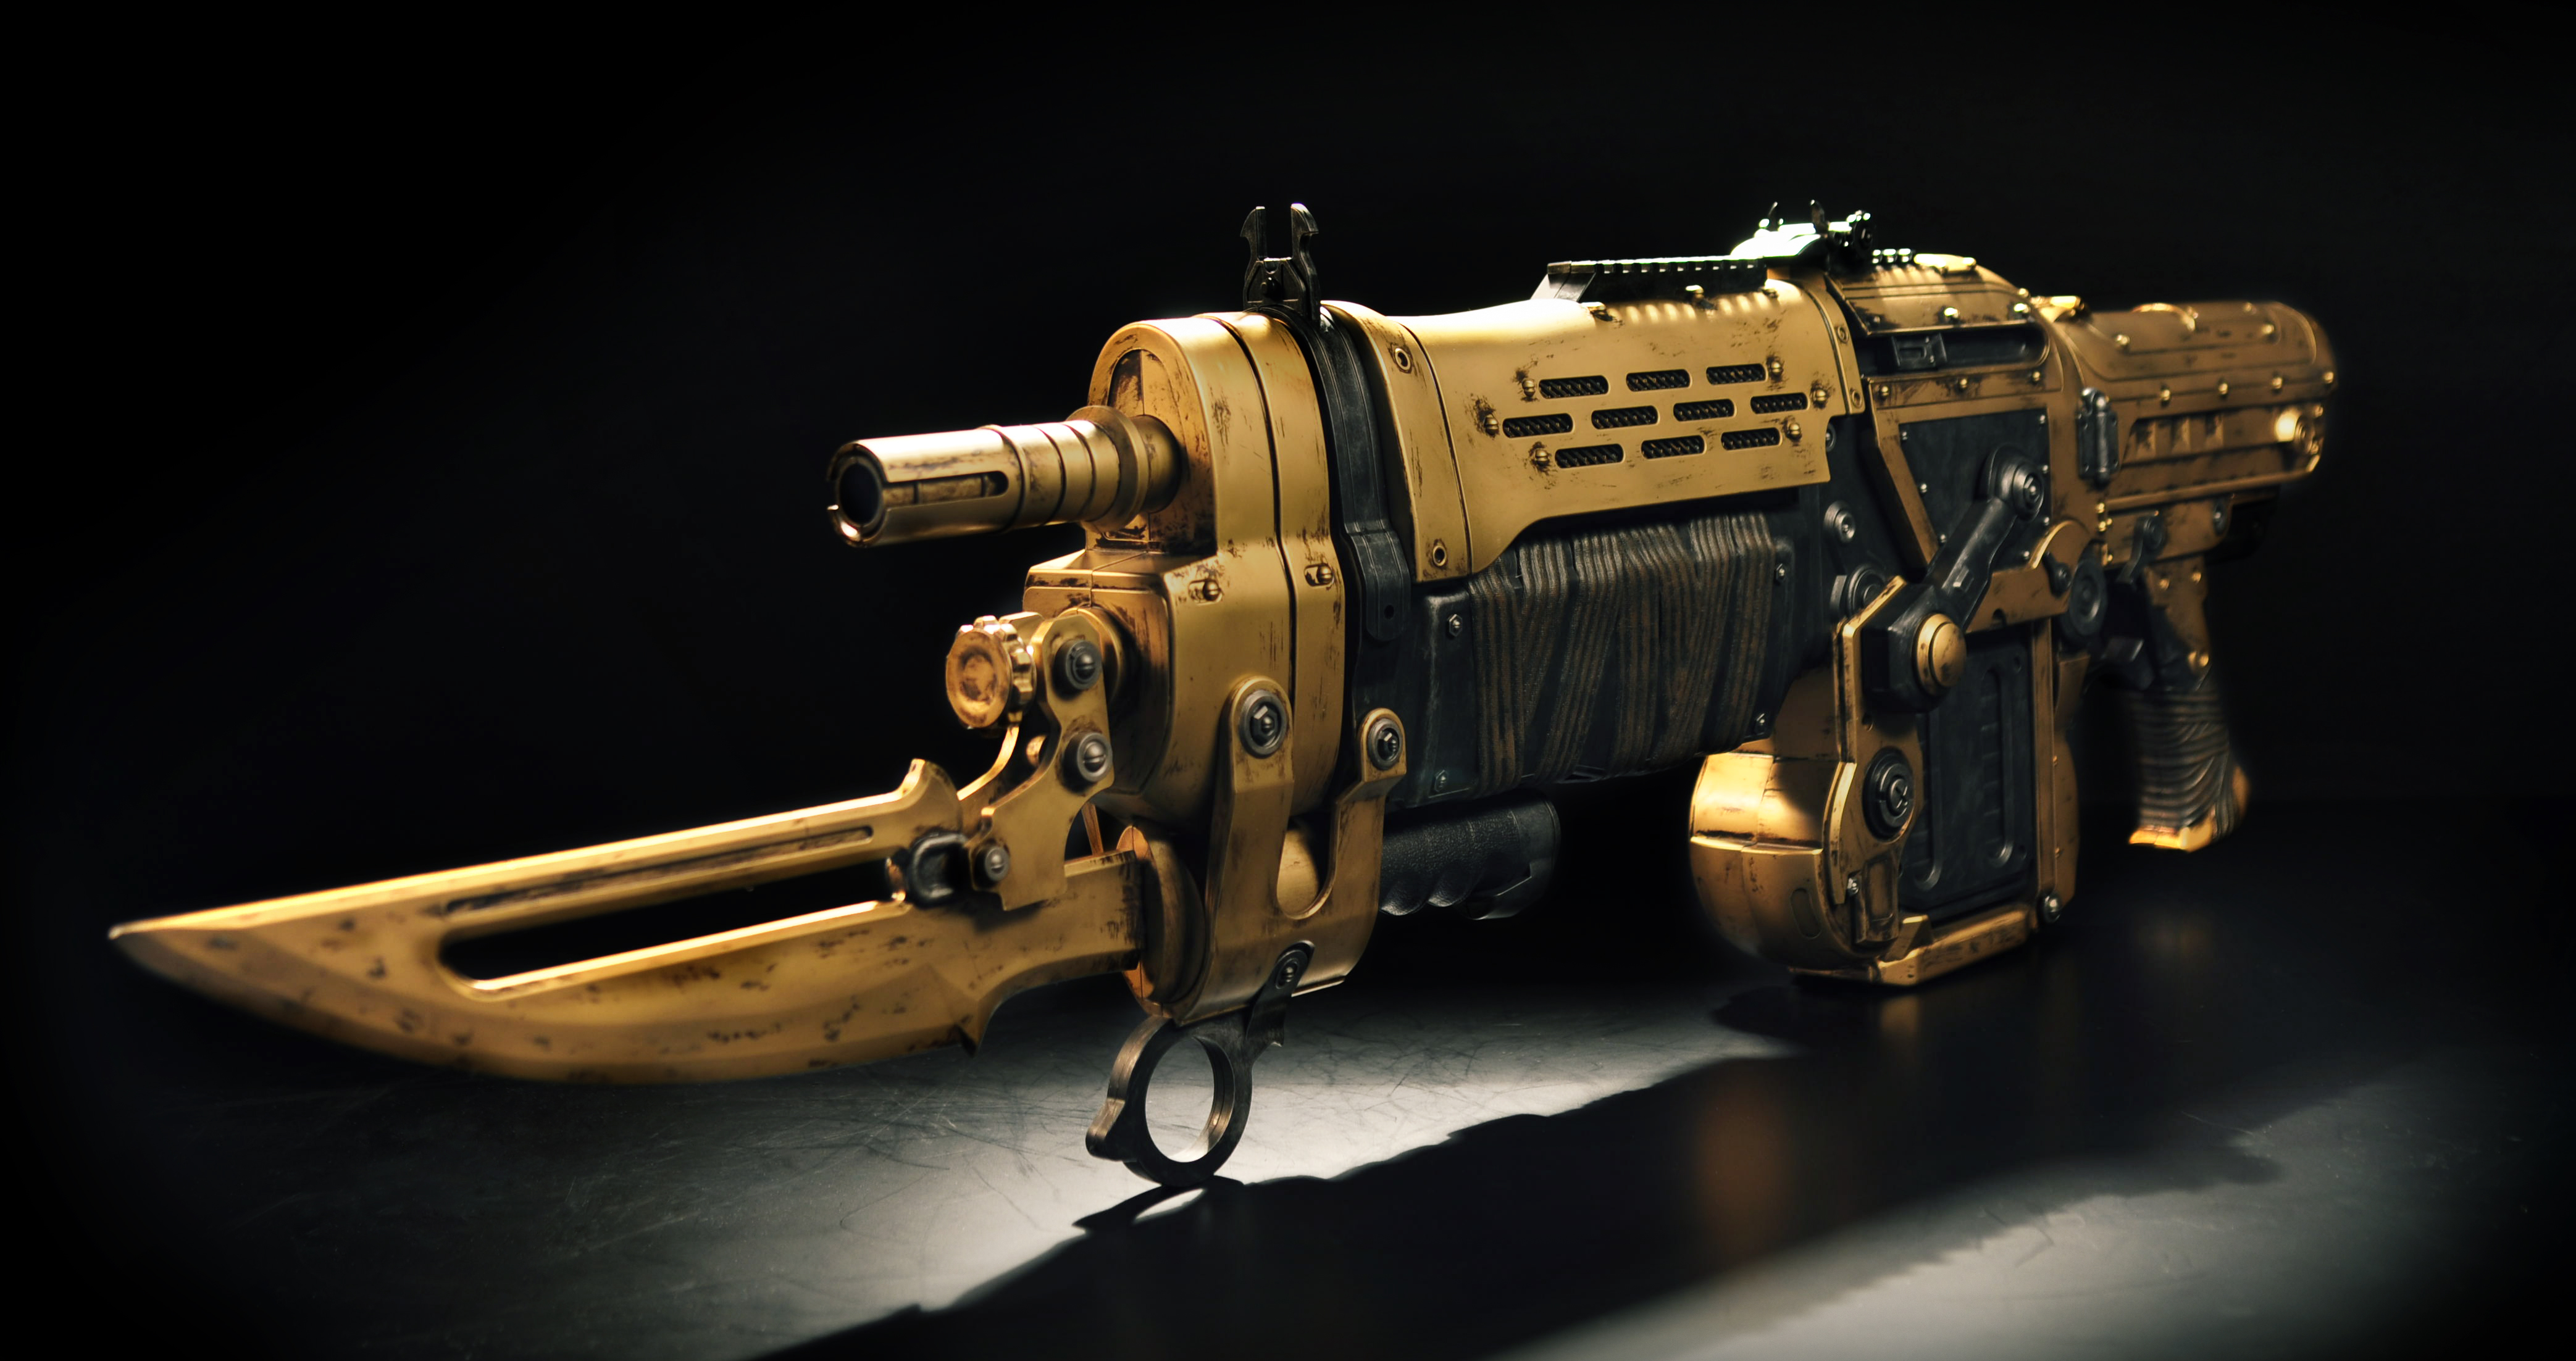 Gold Lancer to be given to one lucky 'Gears of War' fan